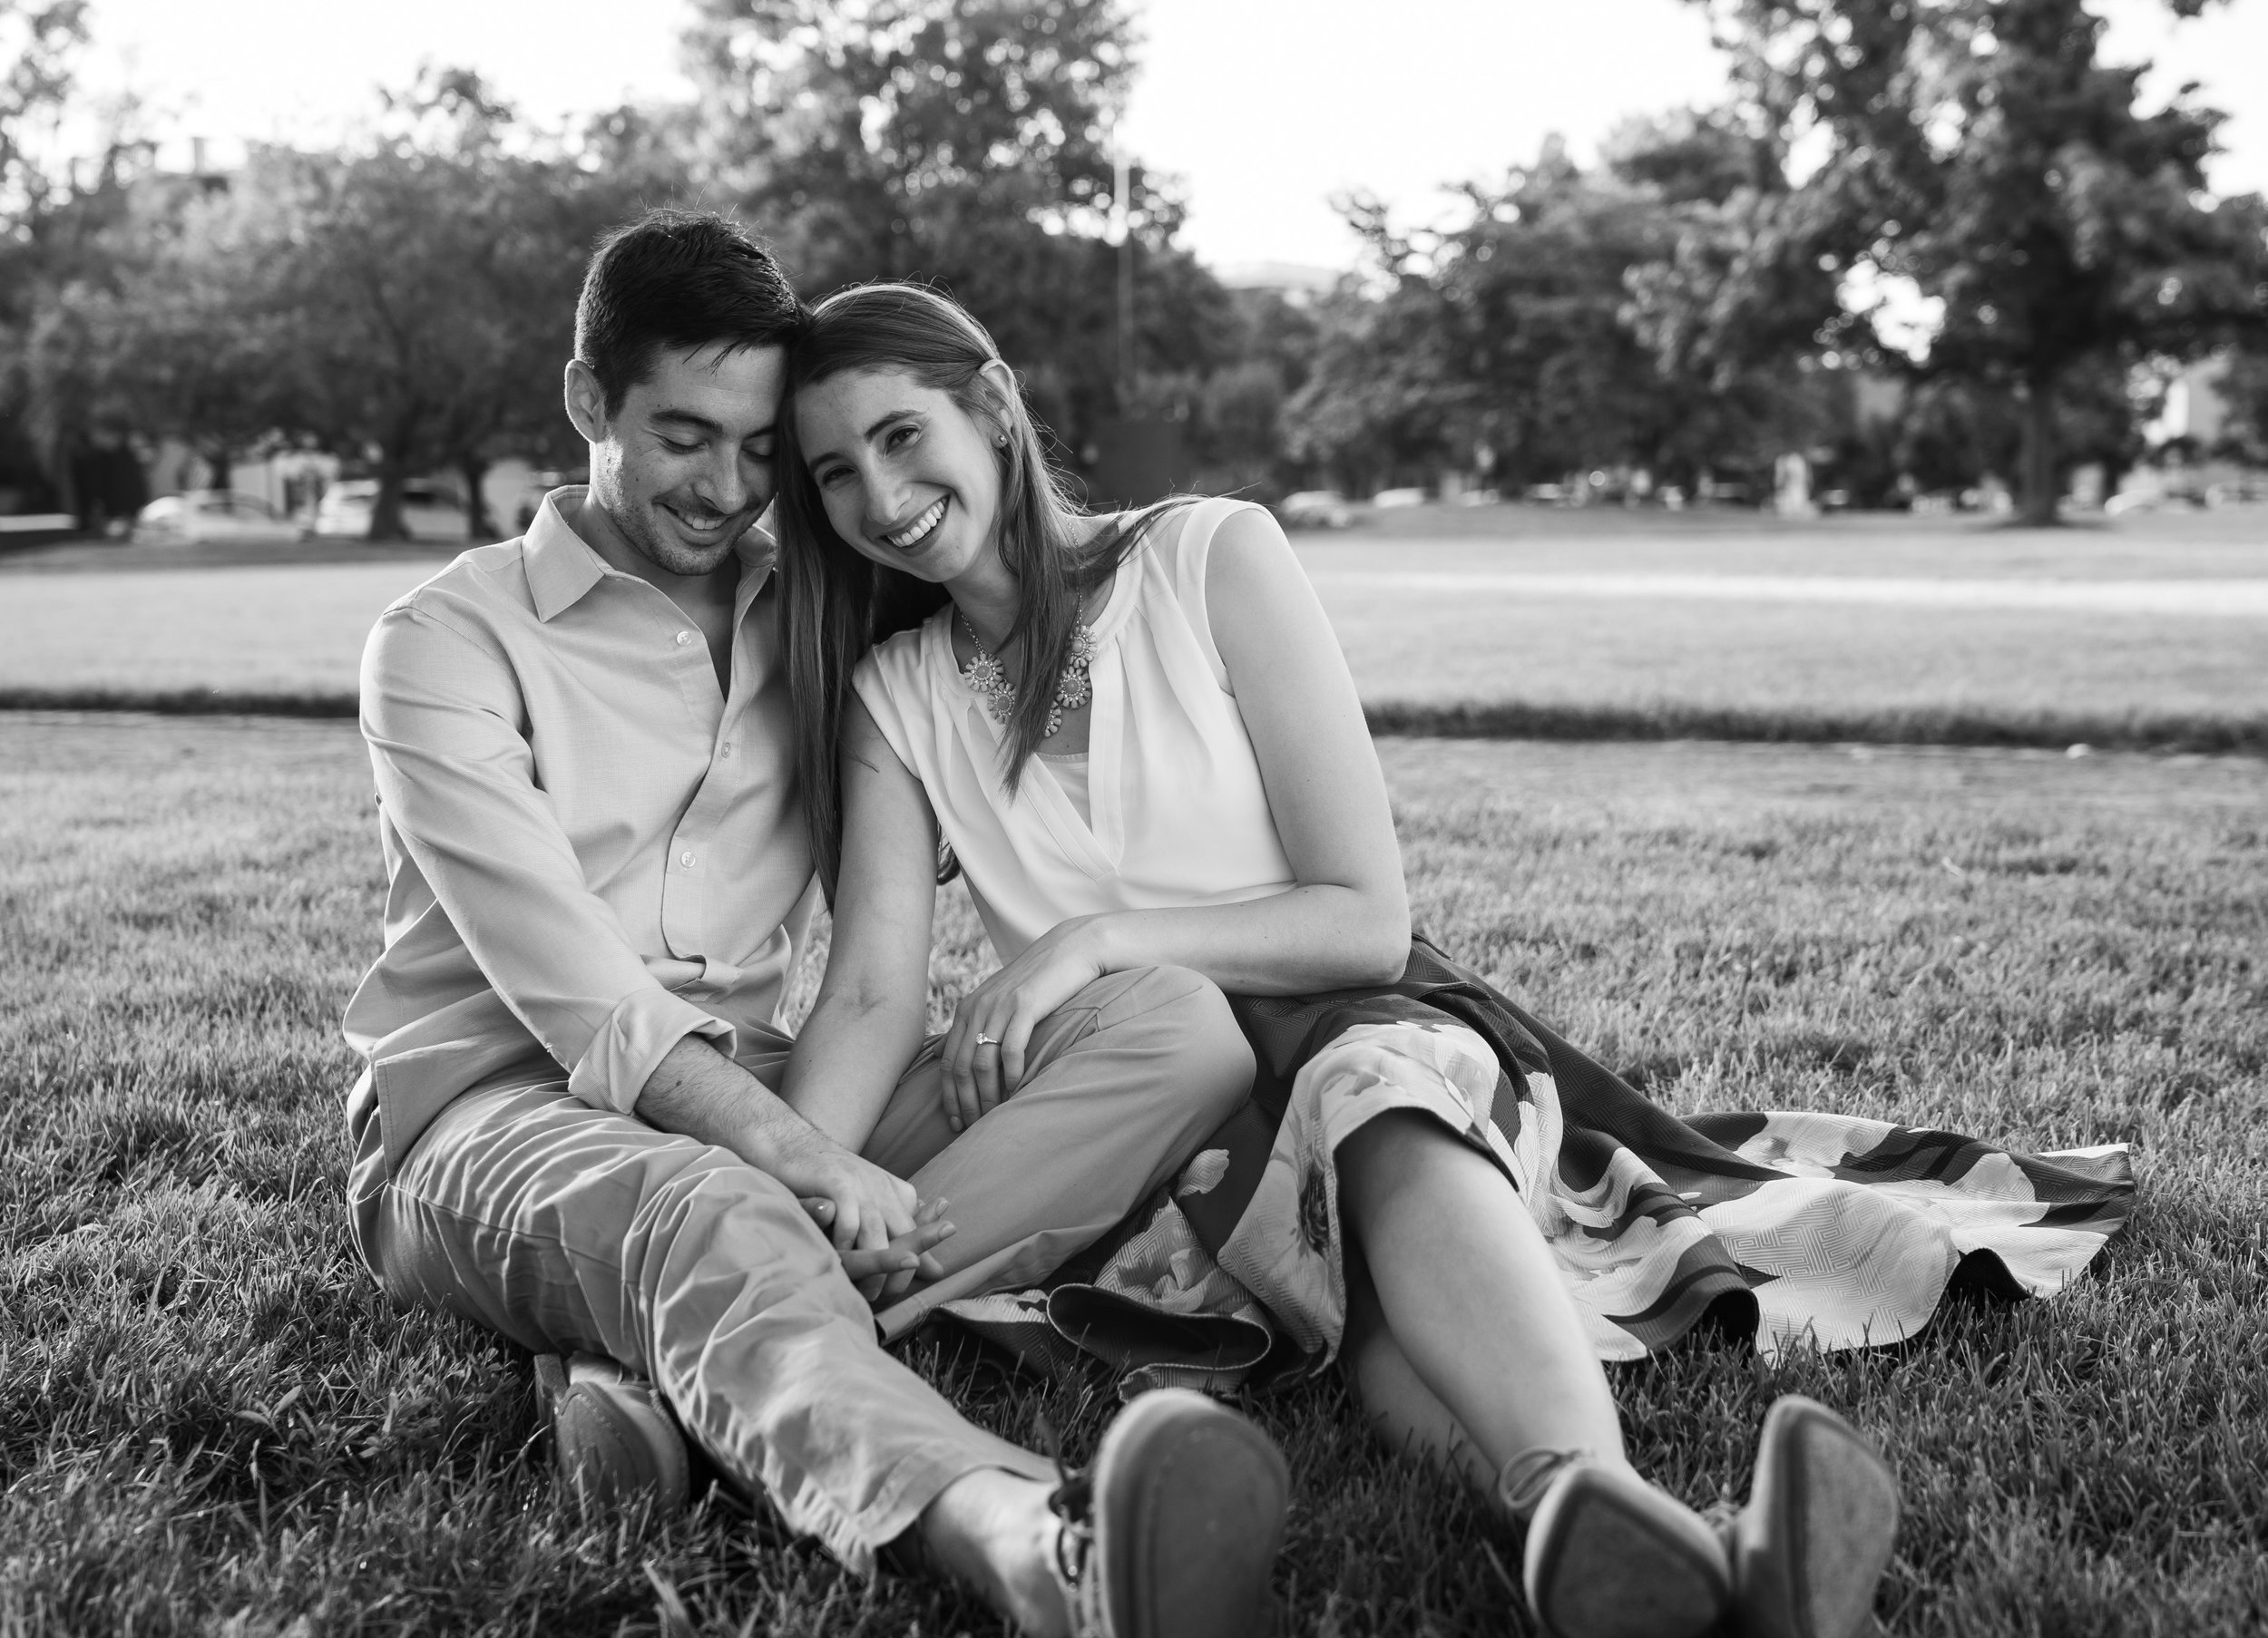 Alexandria waterfront engagement session in the summer on the grass